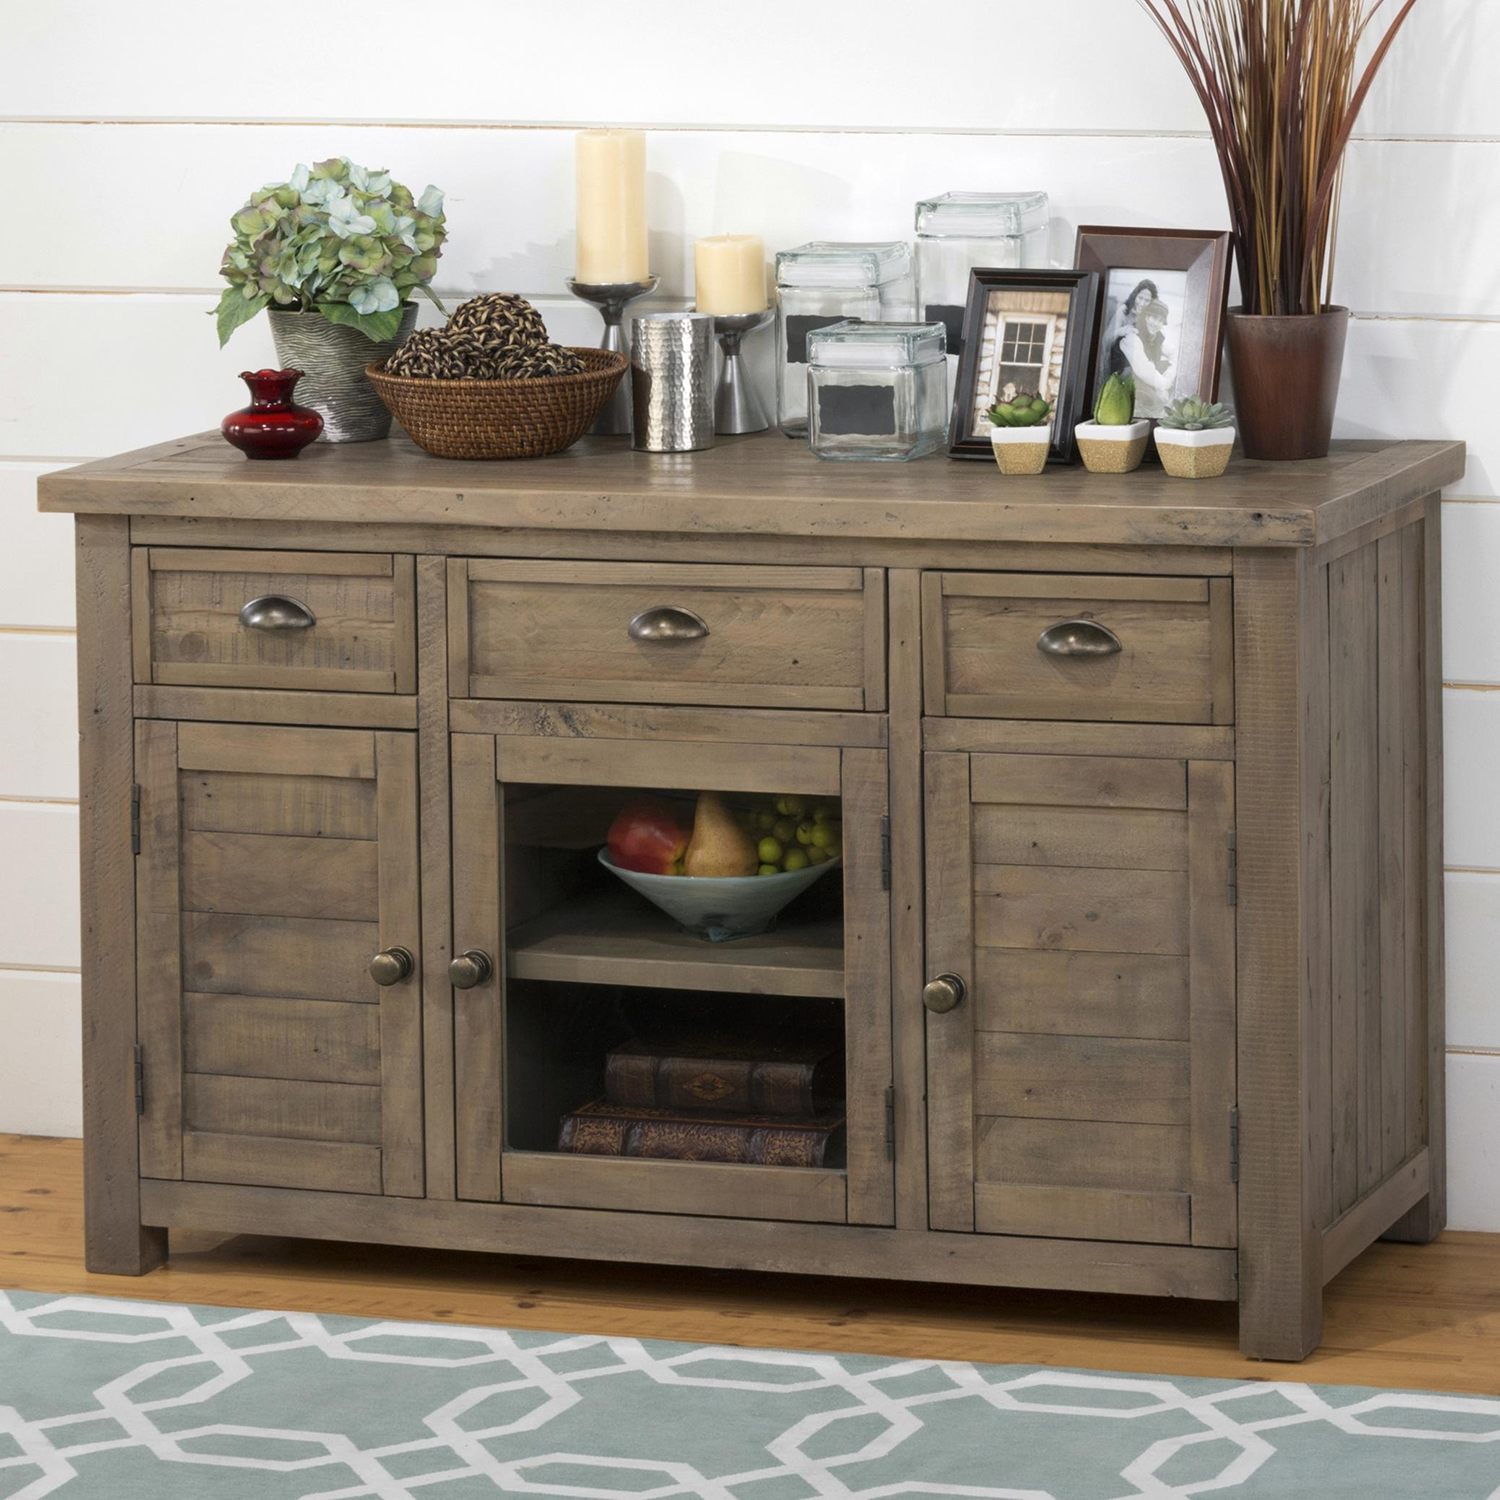 "Slater Mill Pine 50"" Media Unit - Brown - JOFR-942-50"